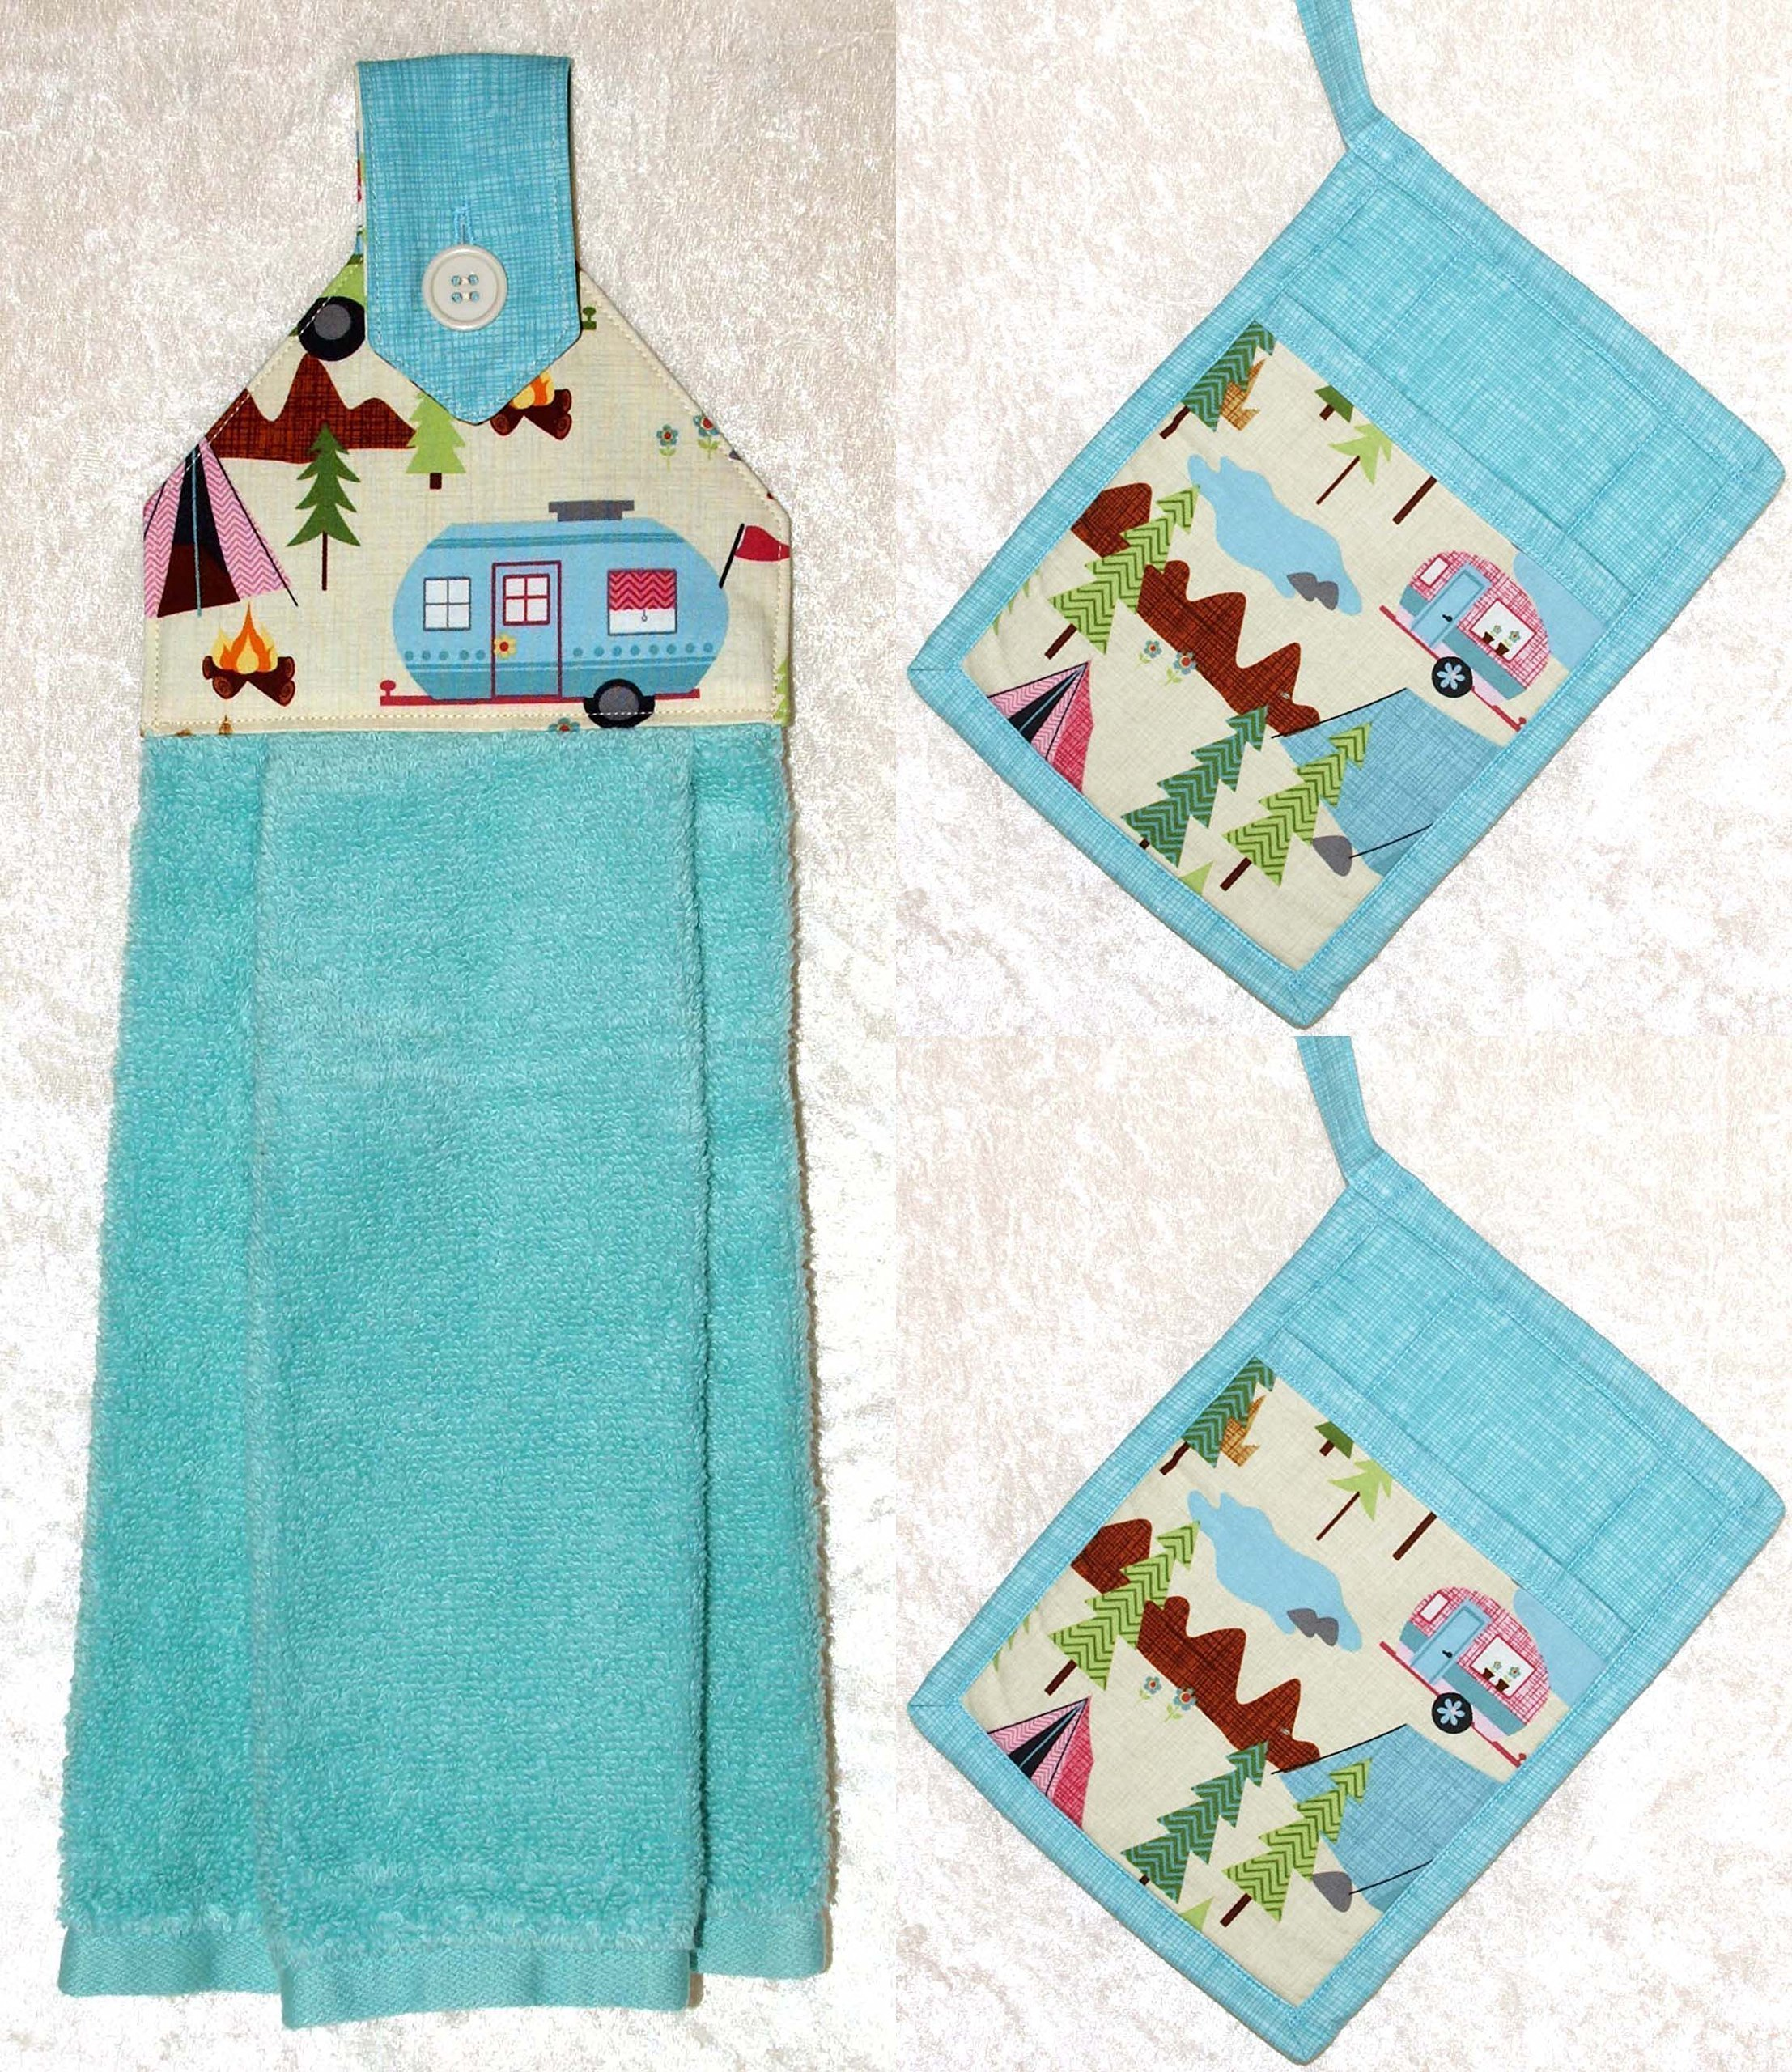 RV Camping Decor - 1 Hanging Hand Towel - 2 Quilted Pocket Potholders - Scenic RV Camper Print